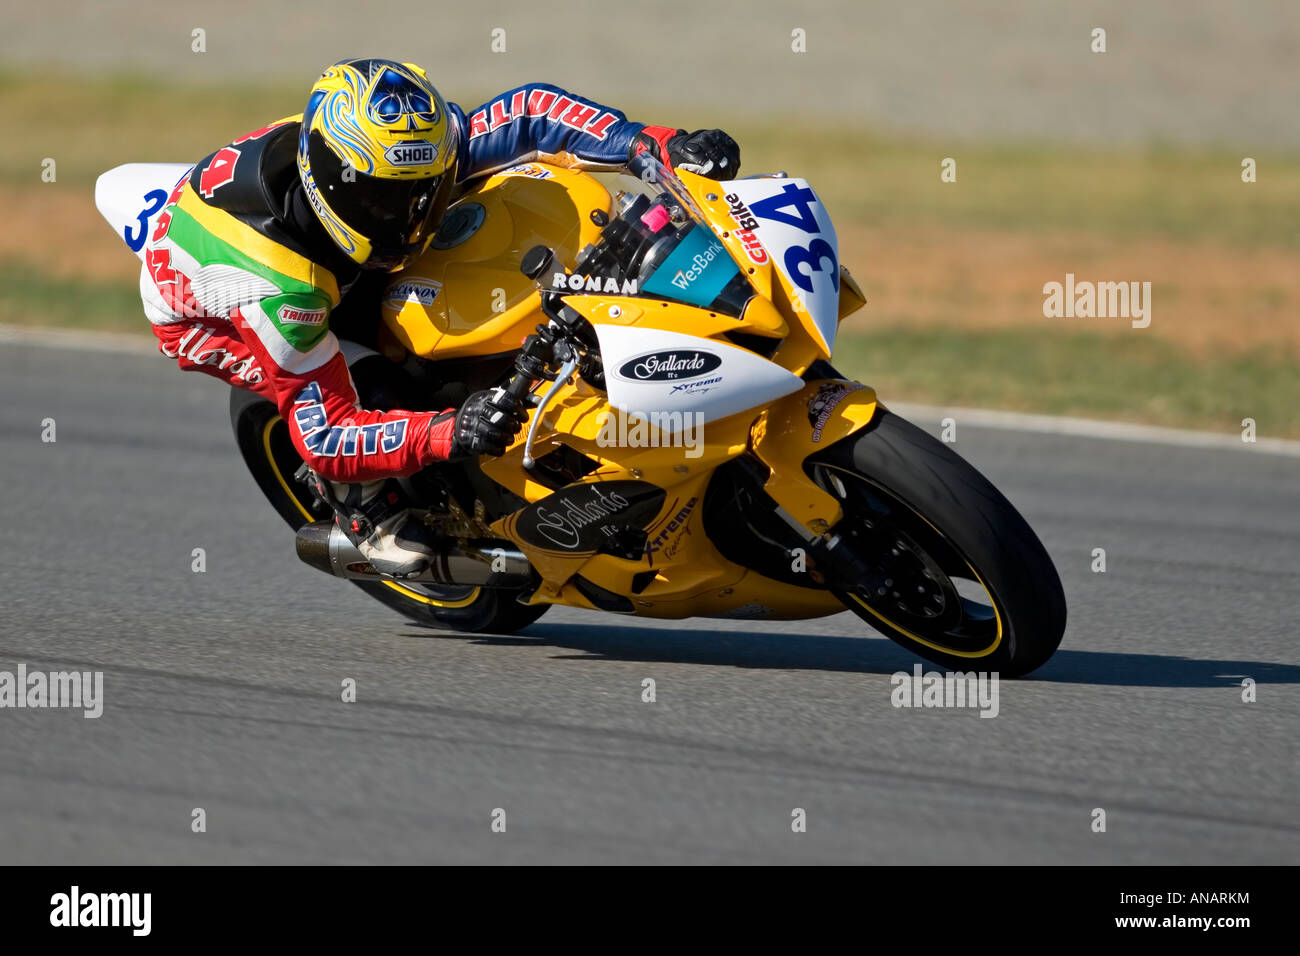 Supersport bike action (Ronan Quarmy, Yamaha R6), Phakisa racetrack, Welkom, South Africa (5 May 2007) - Stock Image